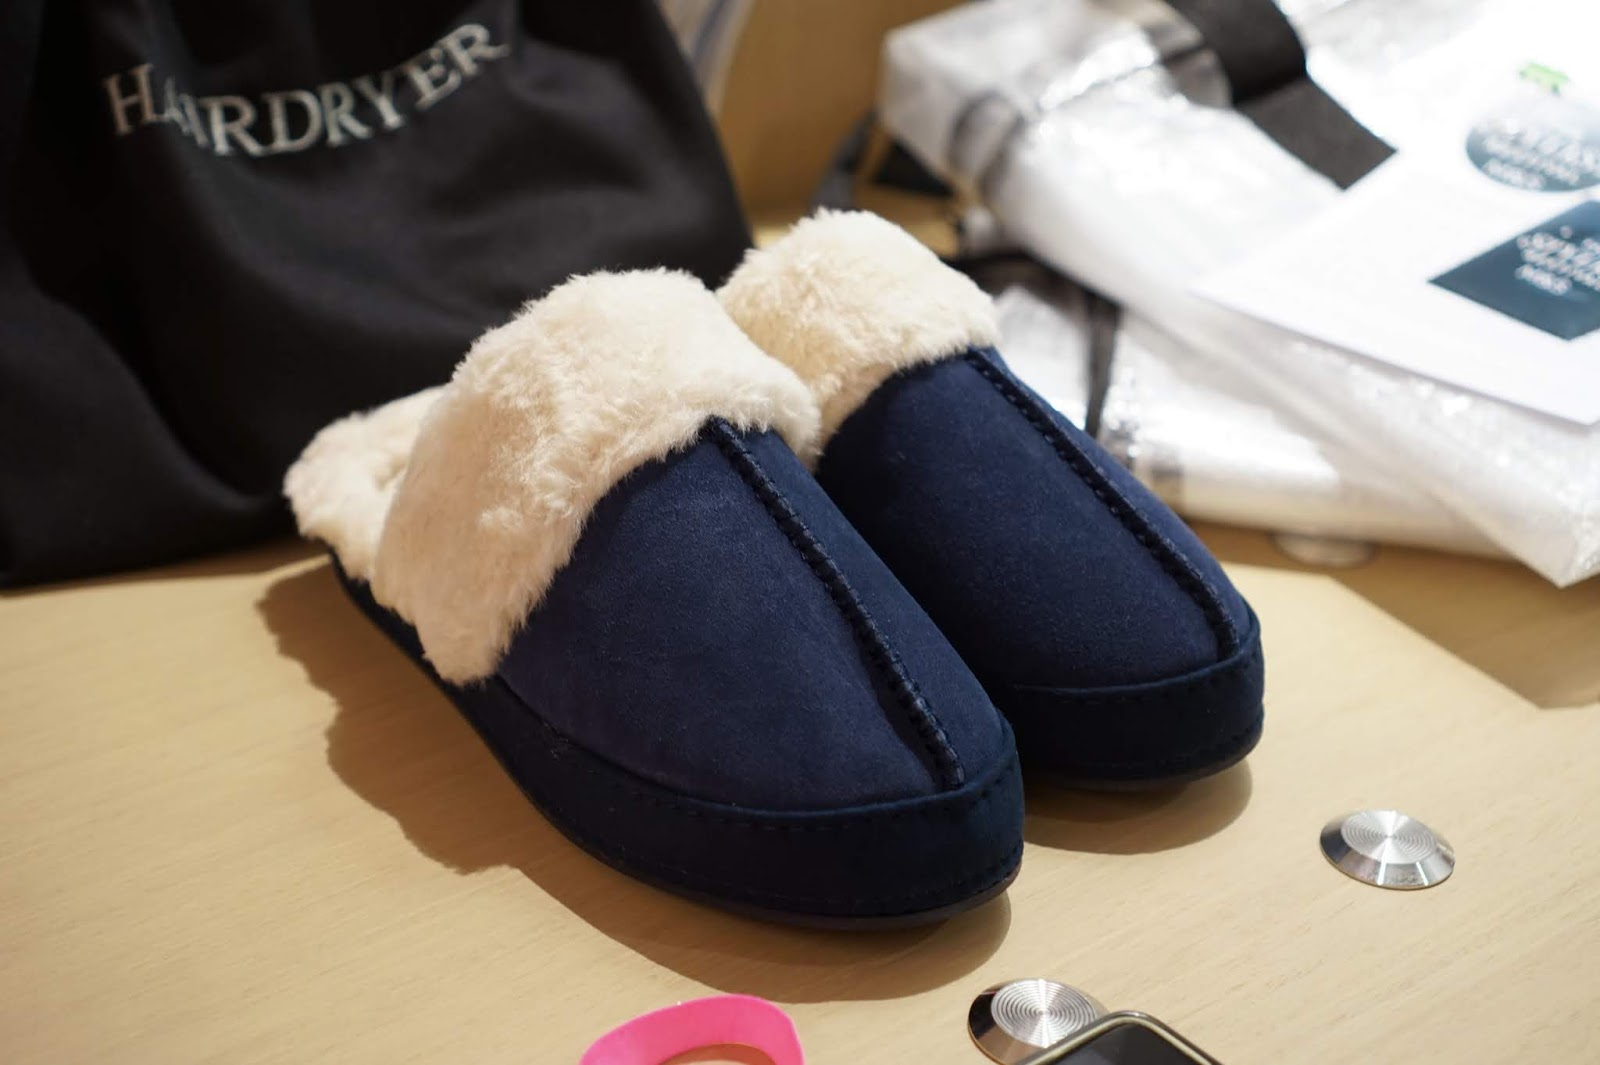 Stylist_Restival_Marks_and_Spencer_Slippers